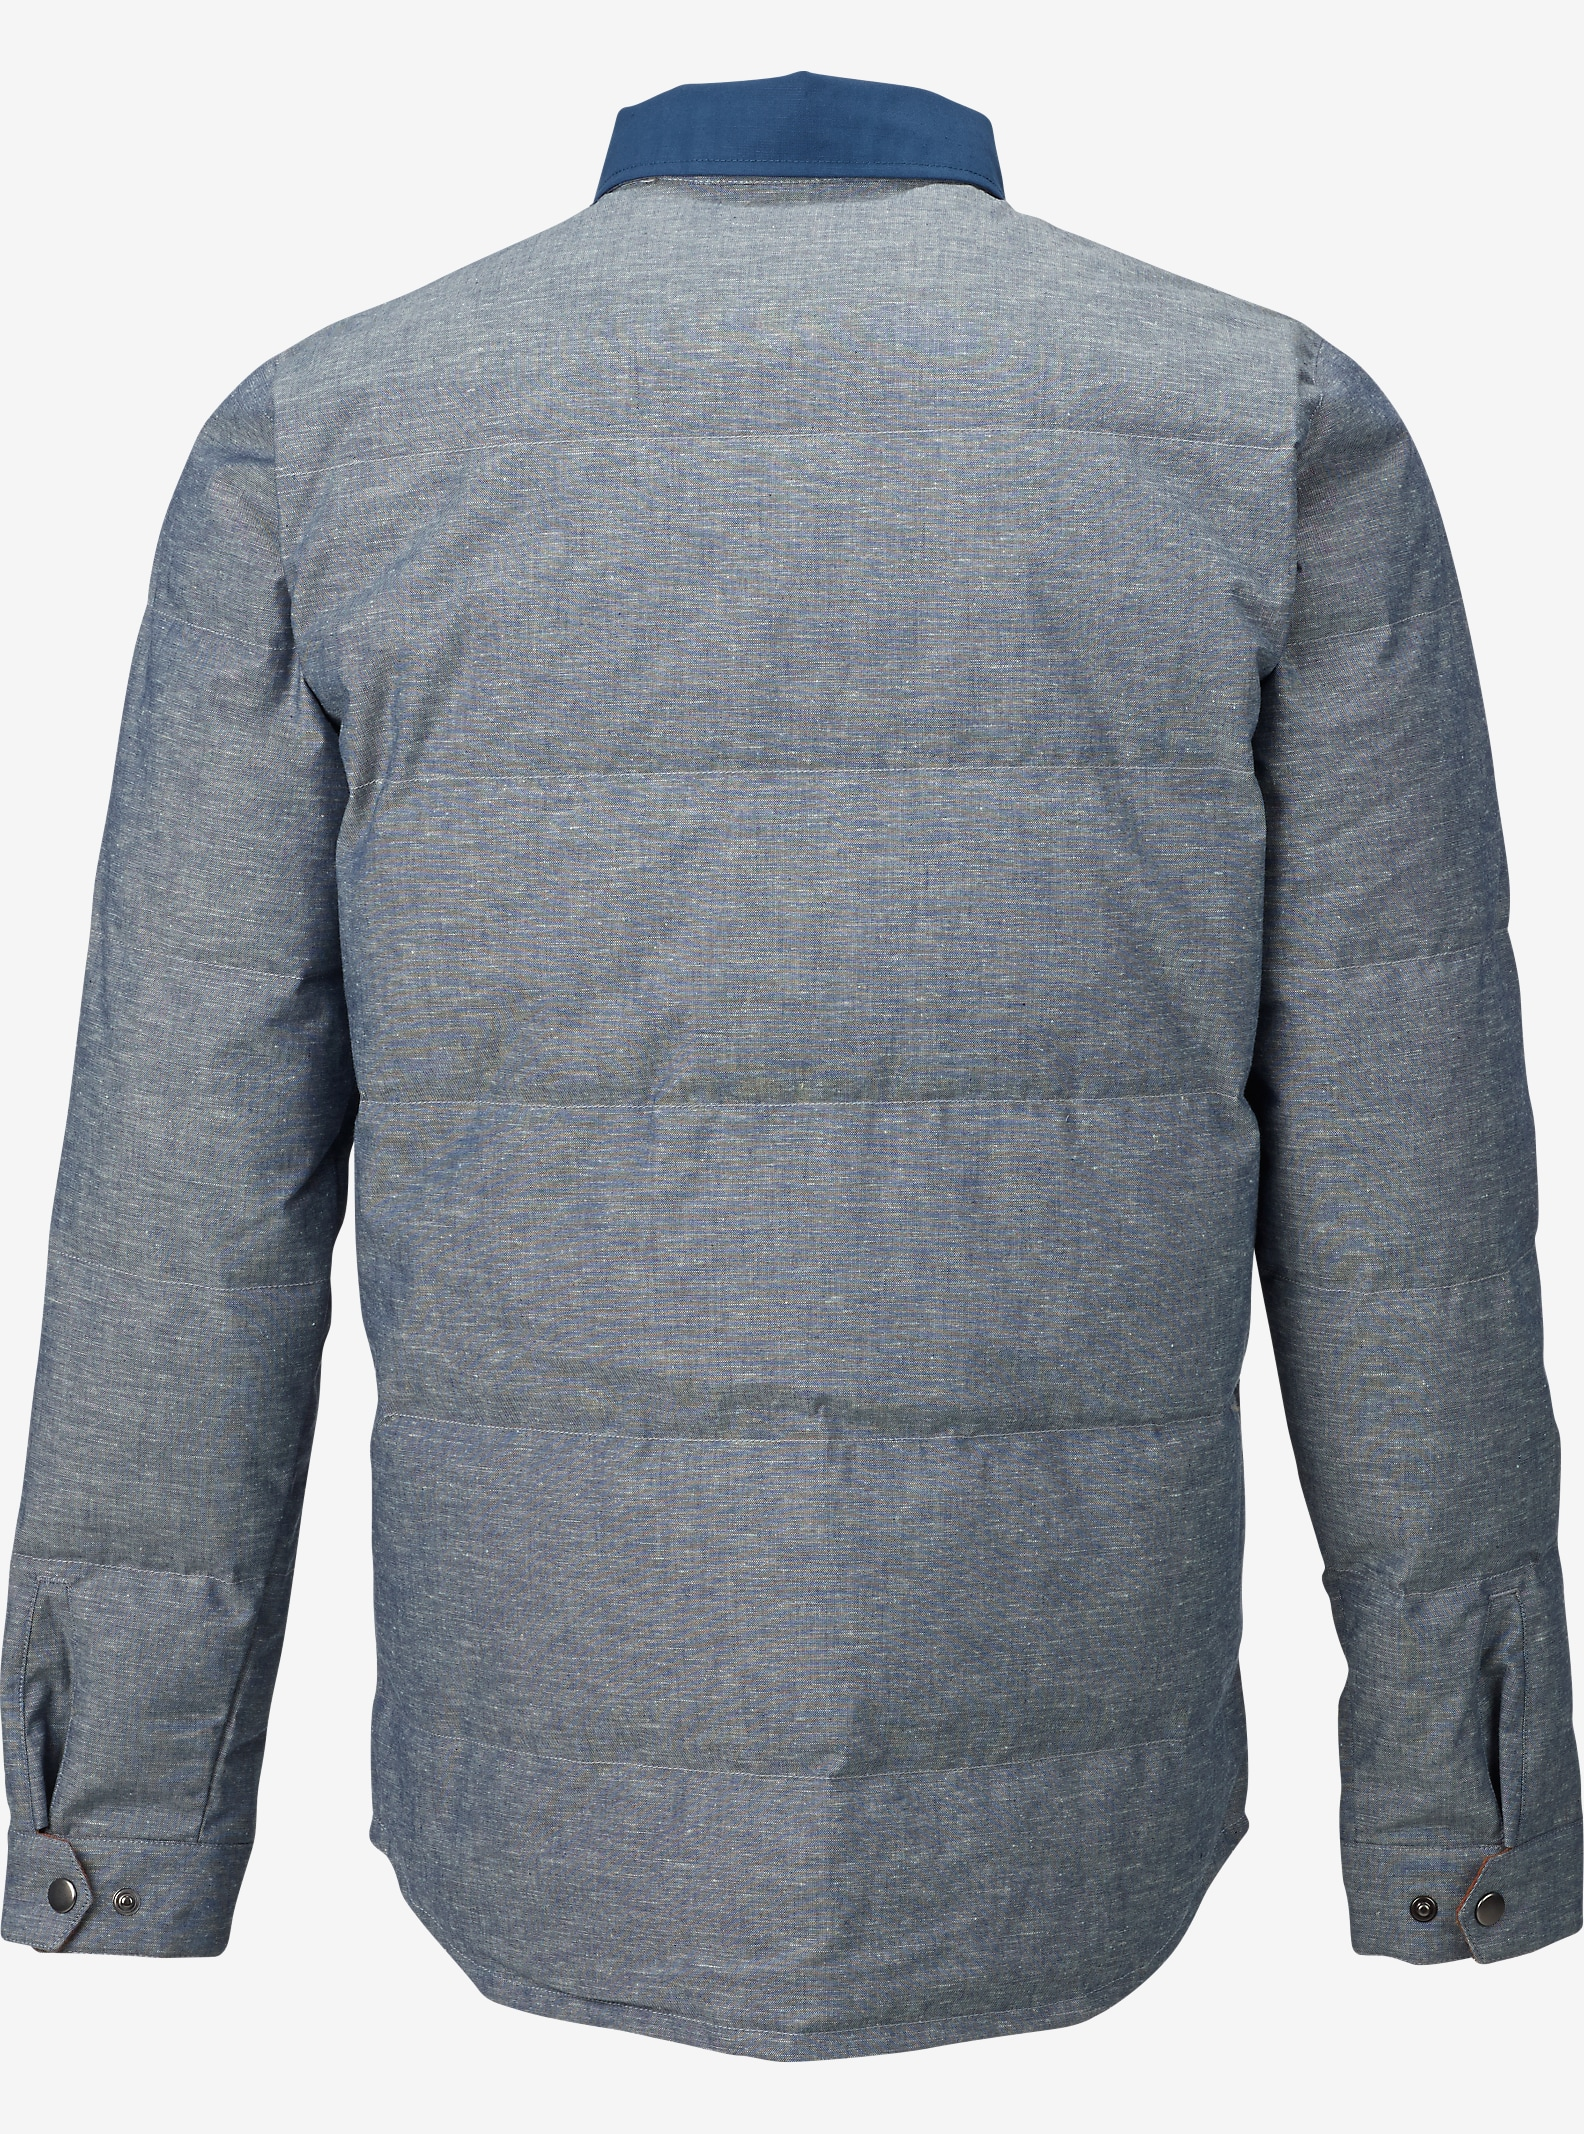 Burton Hayes Jacket shown in Chambray